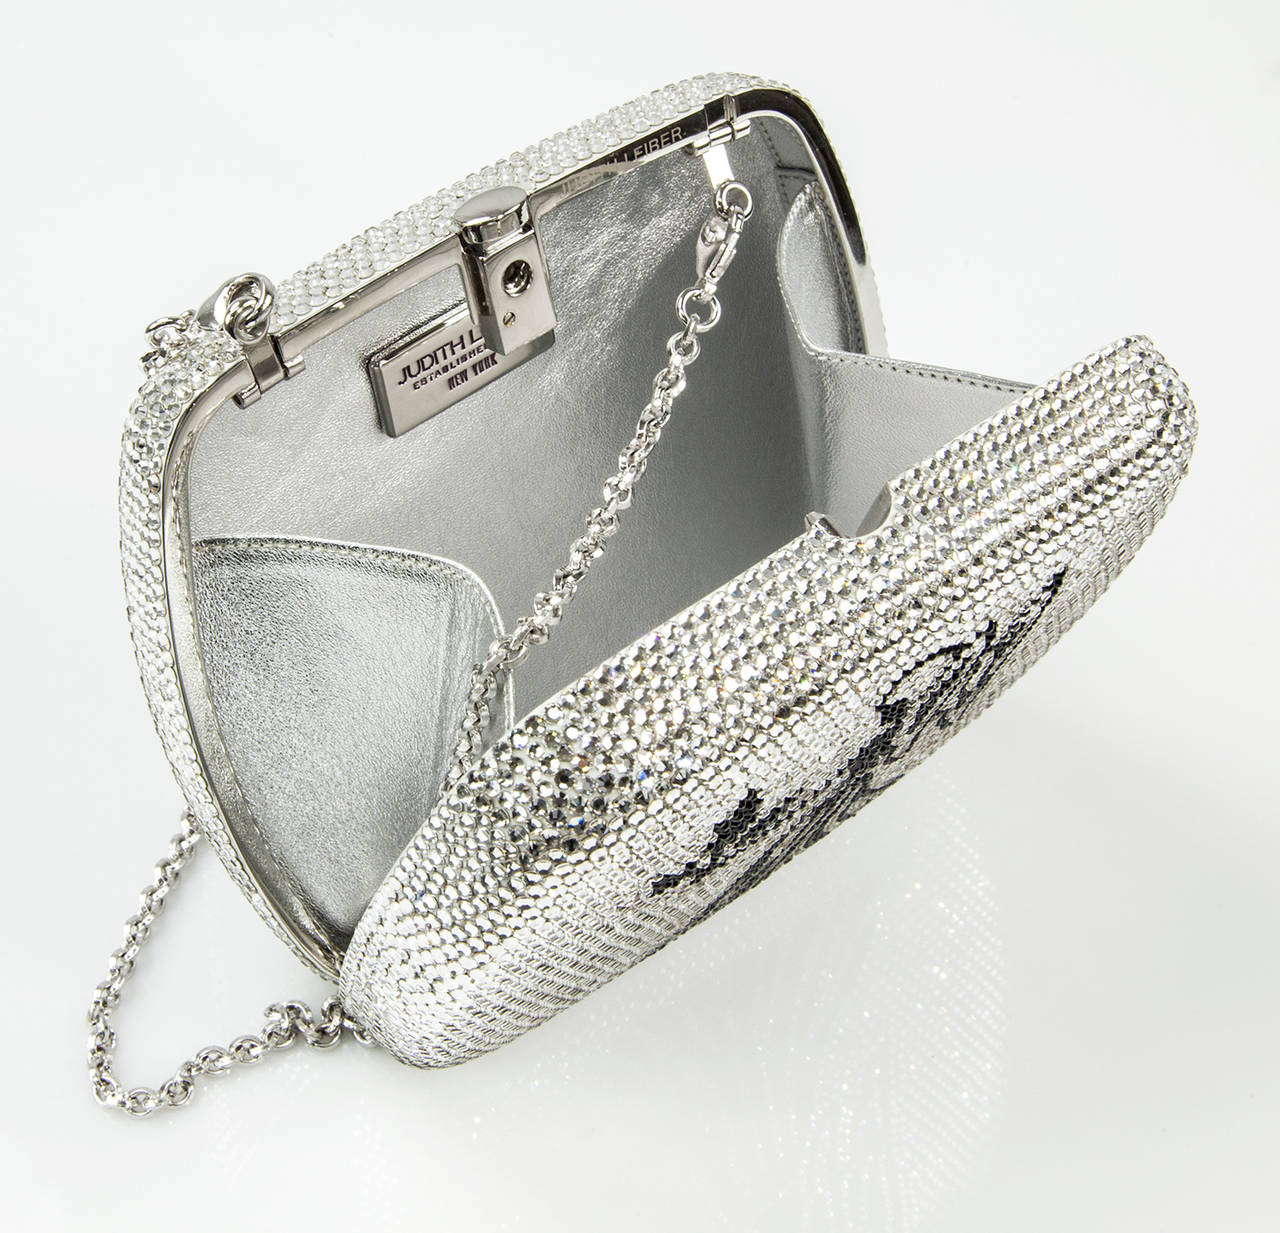 Iconic Judith Leiber Virgo Zodiac Minaudière (French for little treasure) Handbag encrusted with clear rhinestones, centered by a Lady holding branches in Black Rhinestones; Interior reveals Silver metallic Leather and signed Judith Leiber New